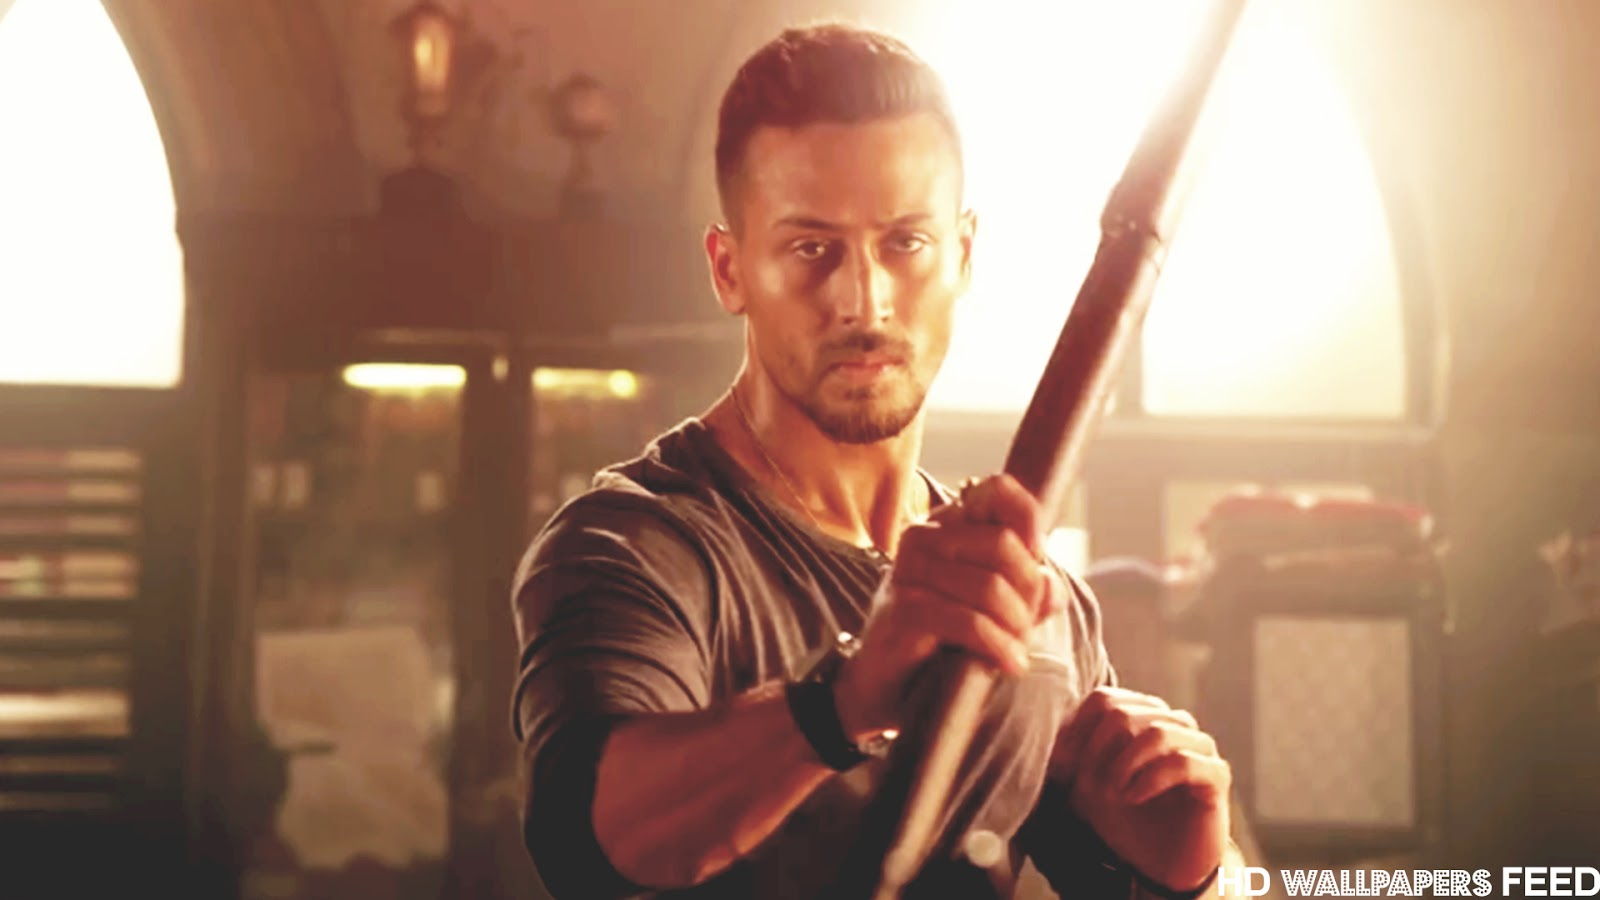 baaghi 2 wallpapers - tiger shroff - disha patani | hd wallpapers feed